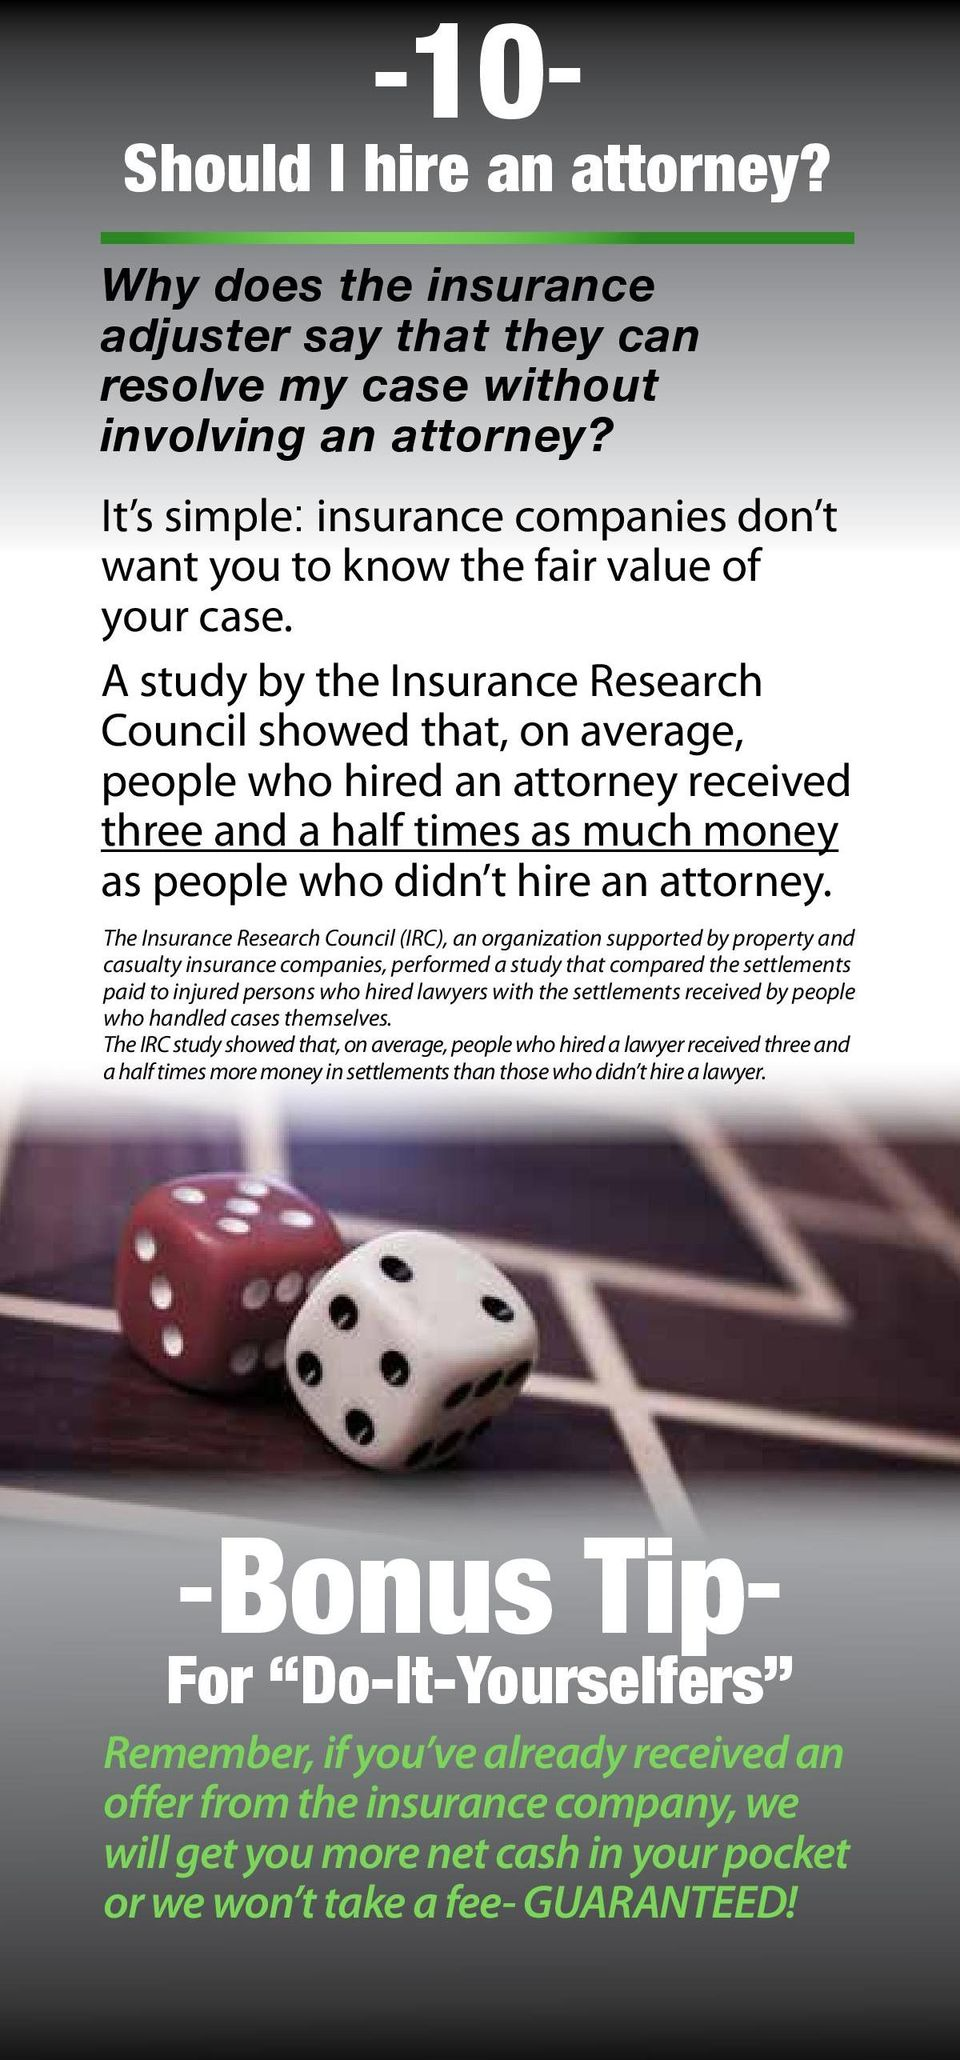 A study by the Insurance Research Council showed that, on average, people who hired an attorney received three and a half times as much money as people who didn t hire an attorney.